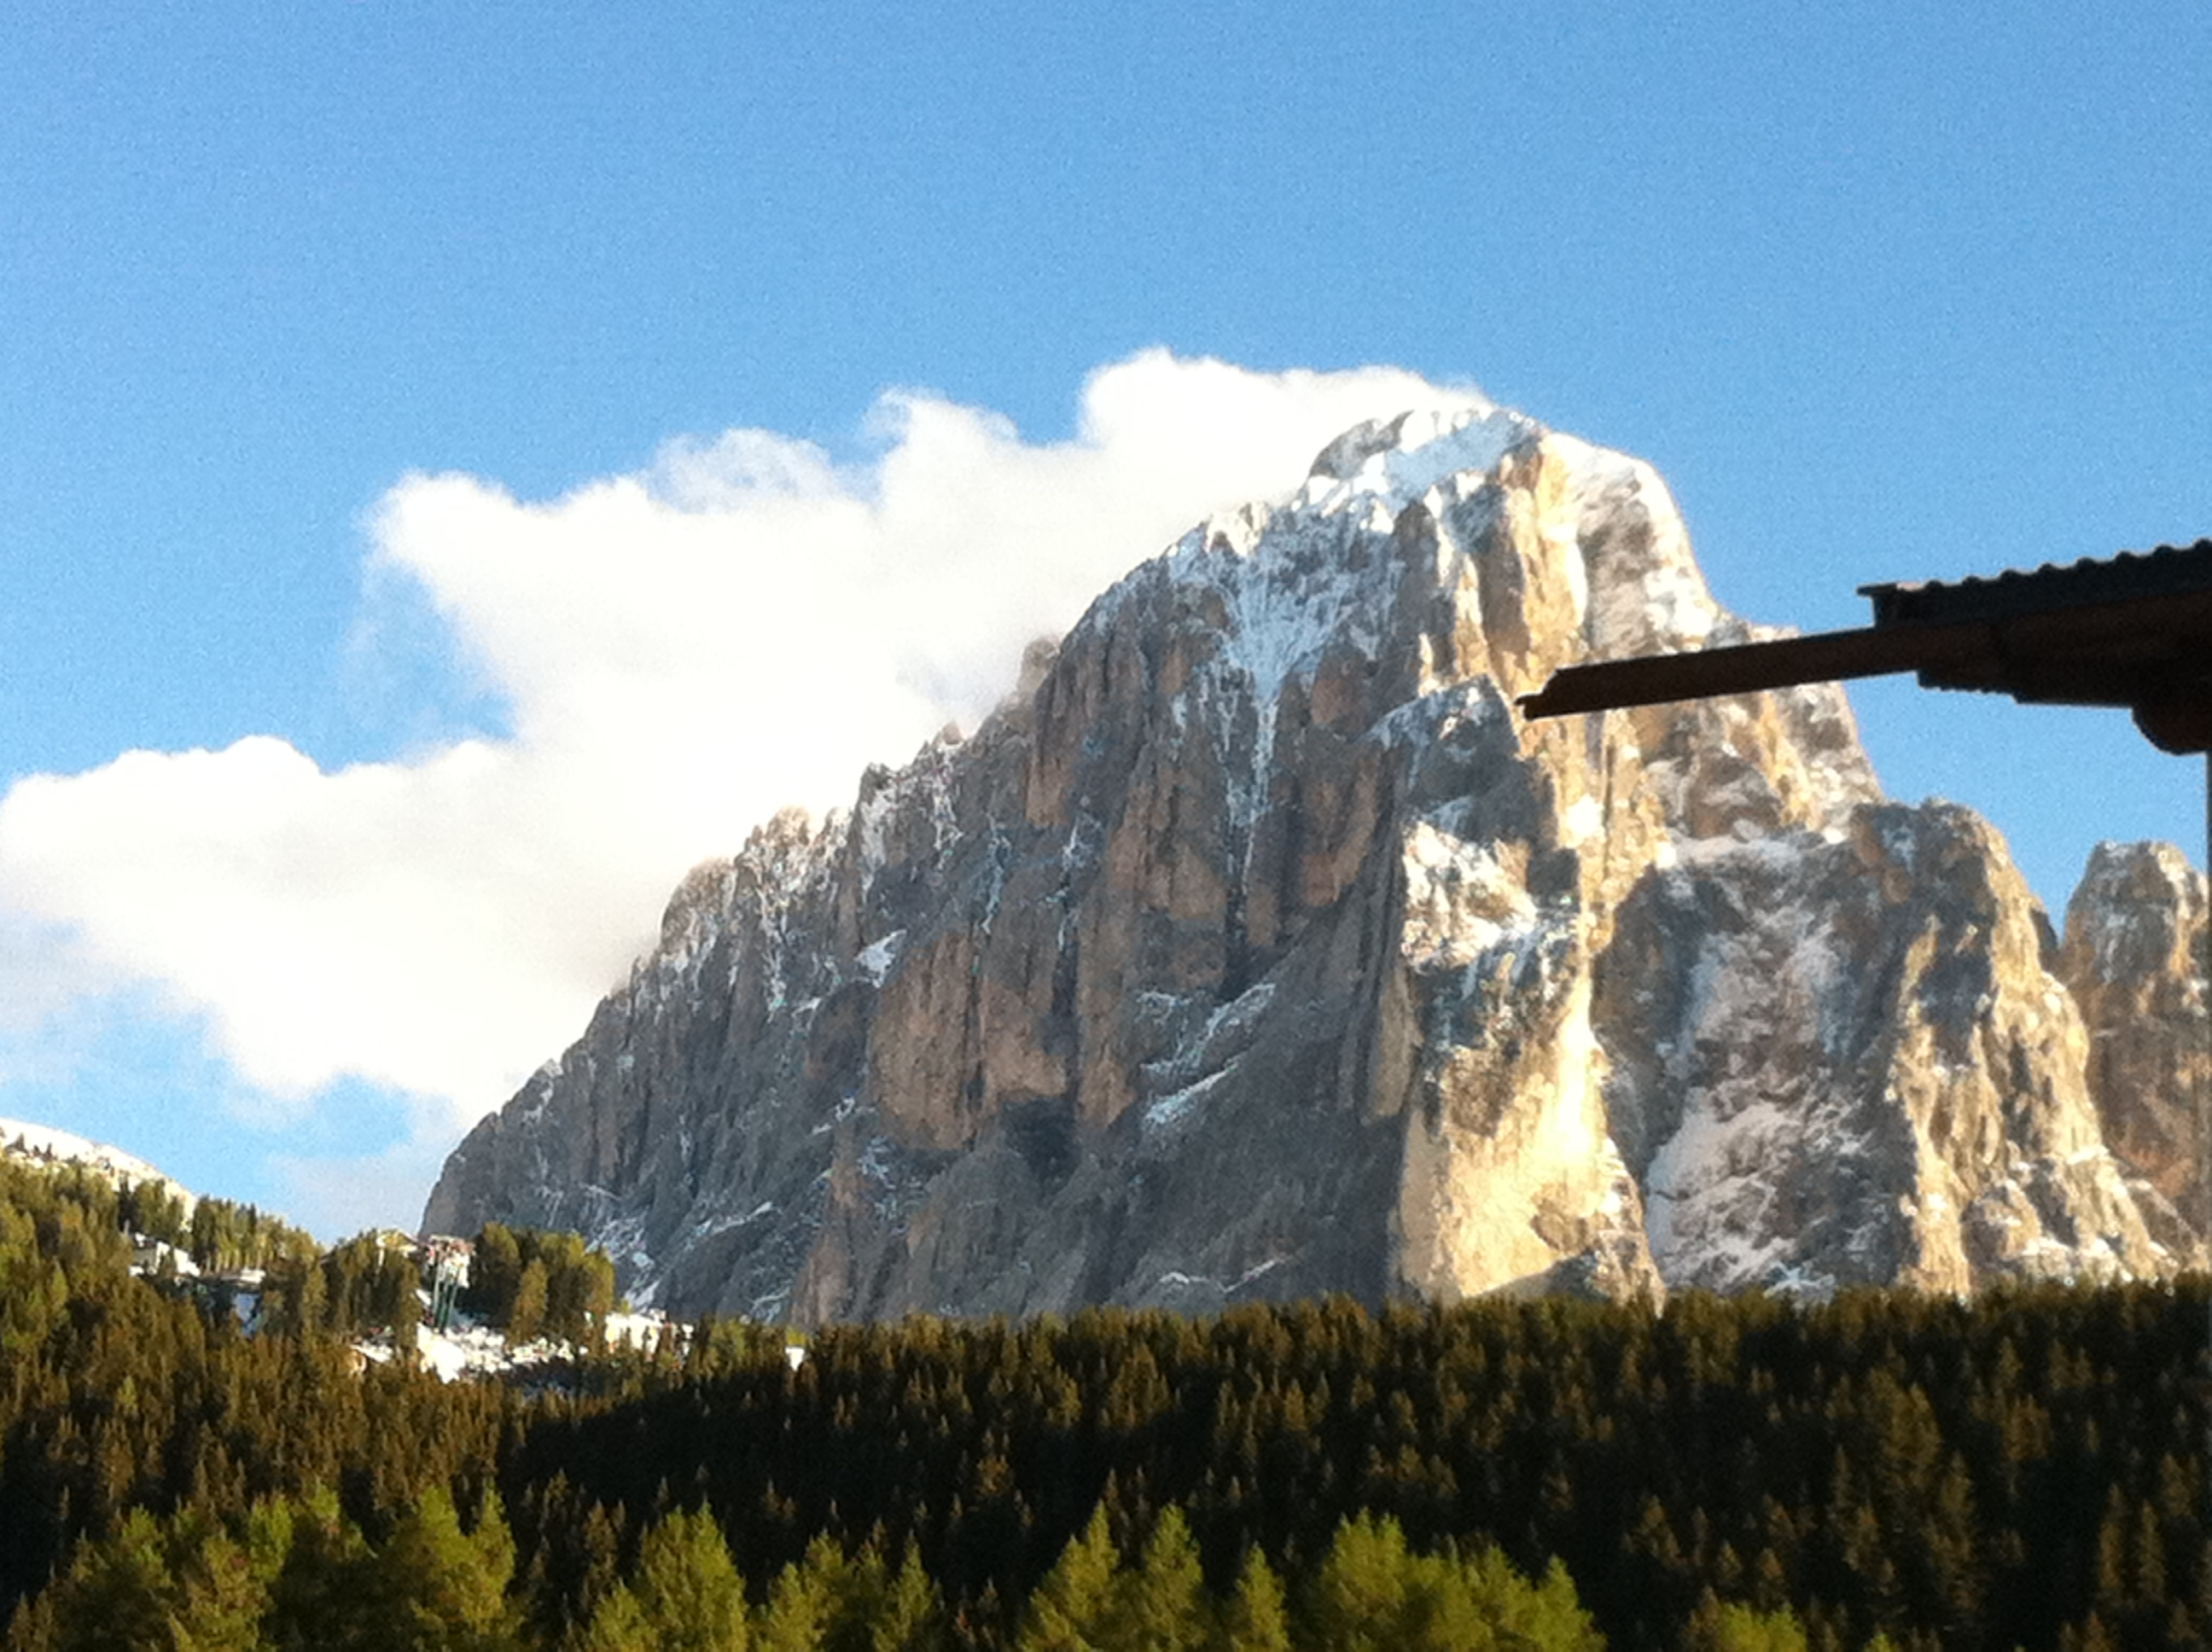 Another view, Val Gardena